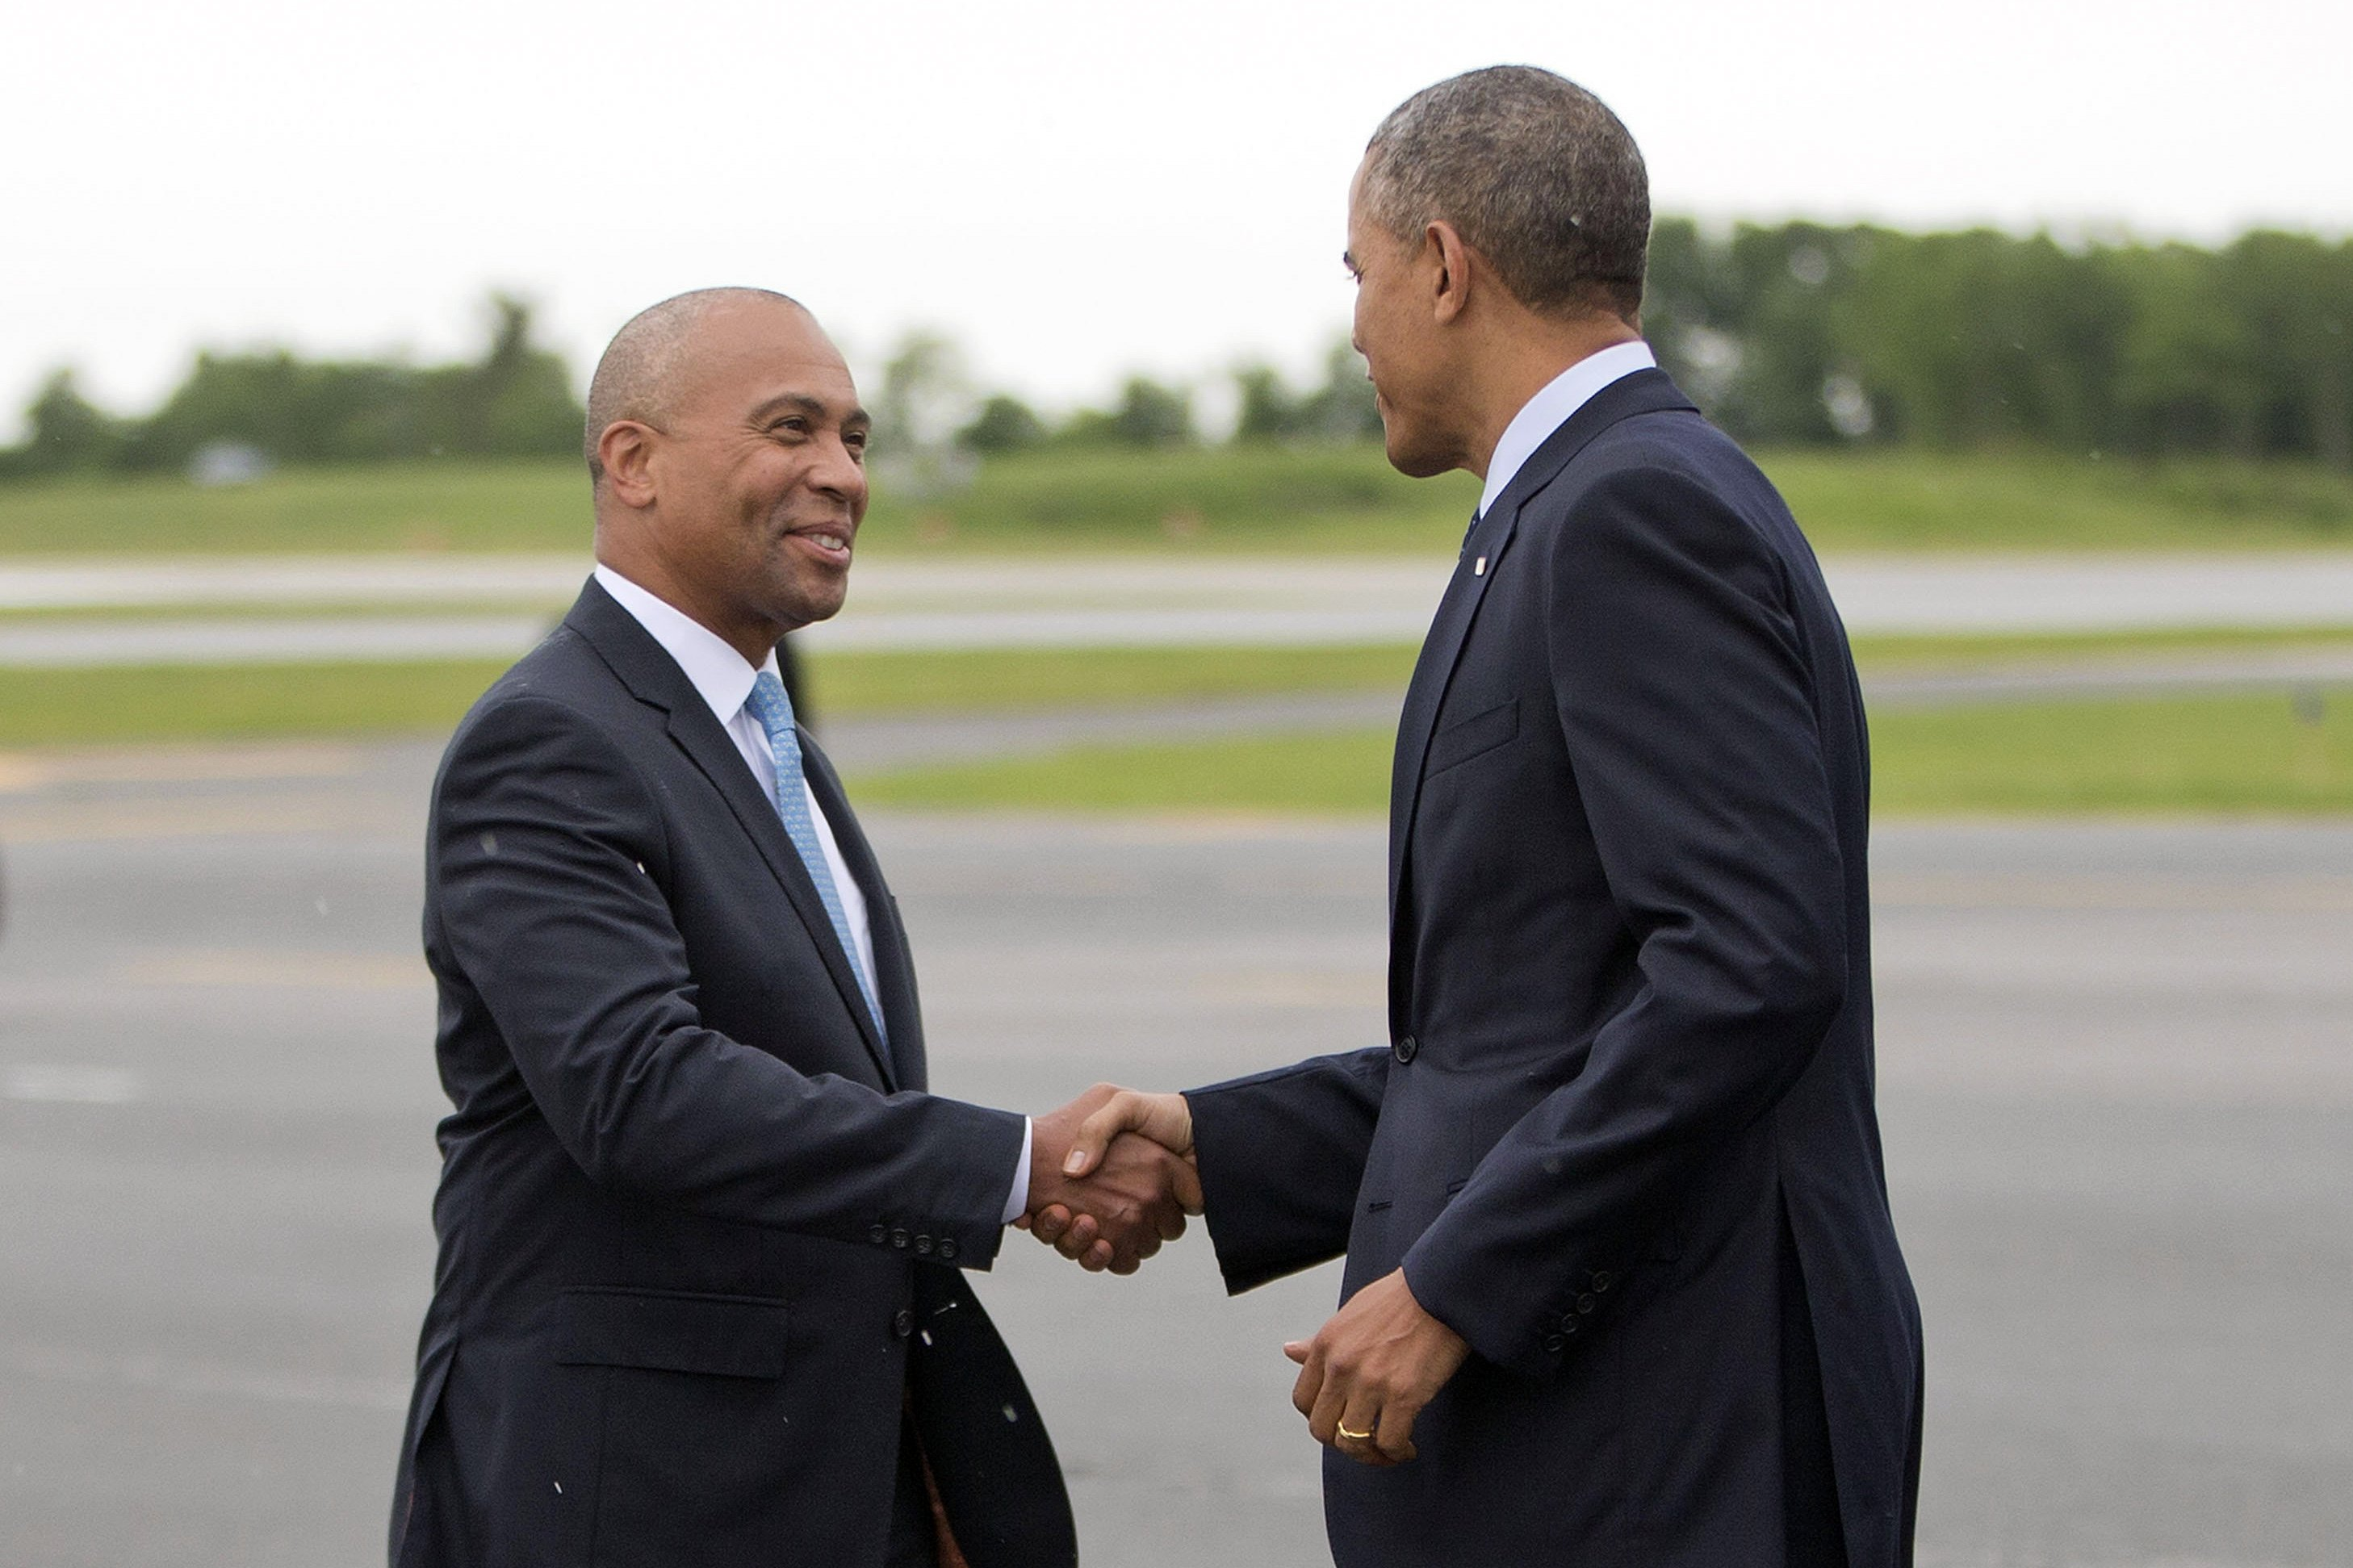 For Obama and Patrick, a long friendship and political bond